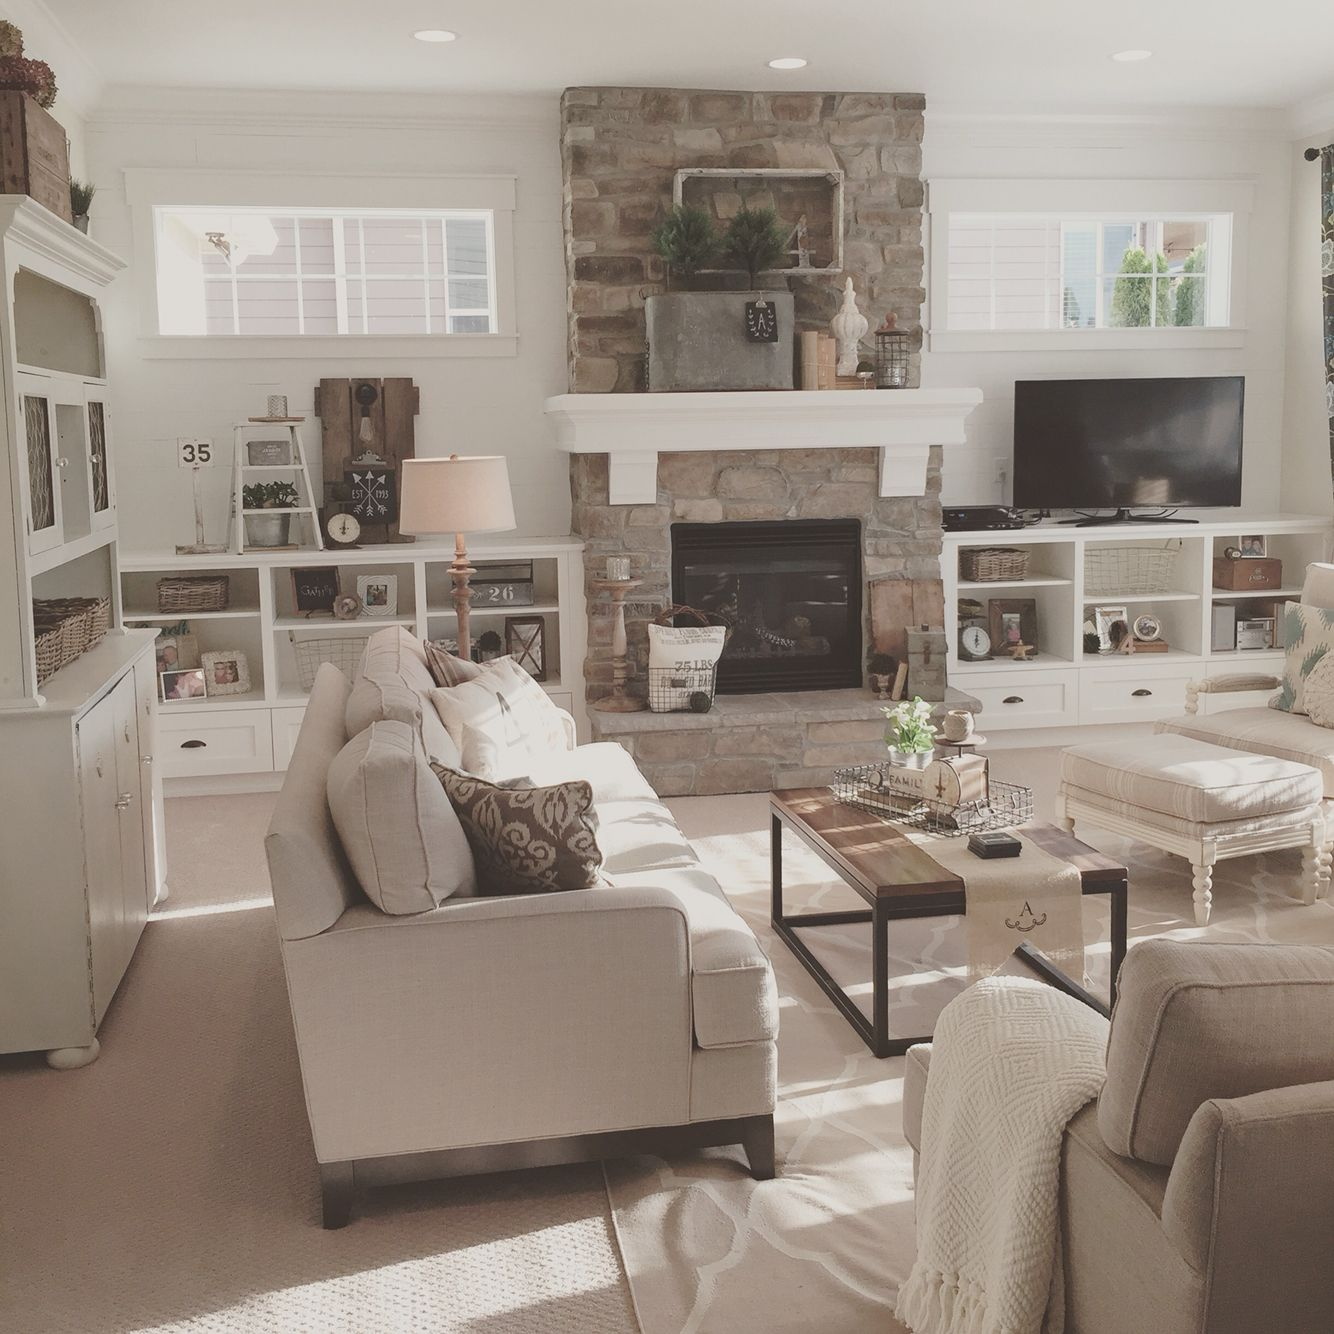 Open concept great room with modern farmhouse style